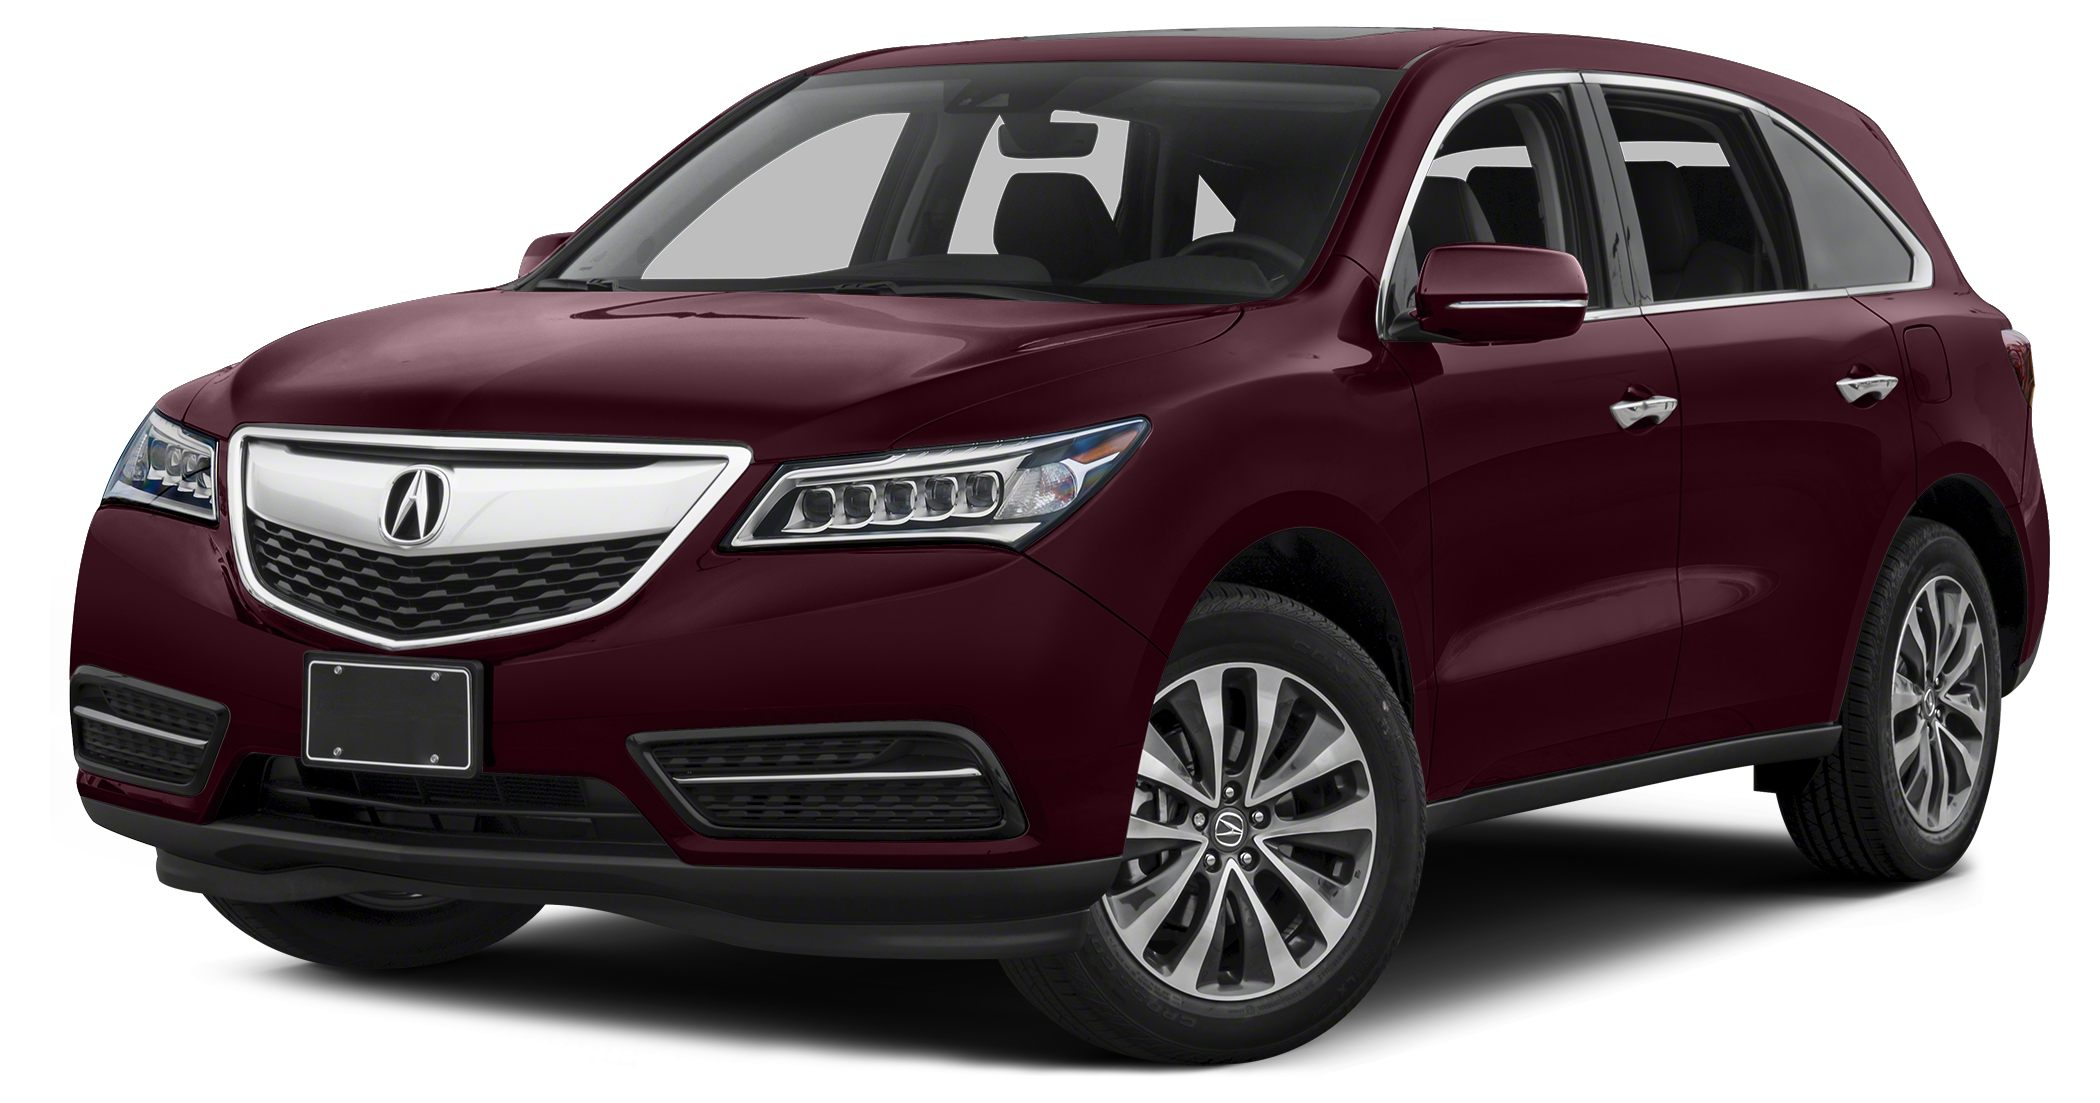 2016 Acura MDX 35 Technology The Acura MDX is as refined as it is sophisticated It is adorned wi